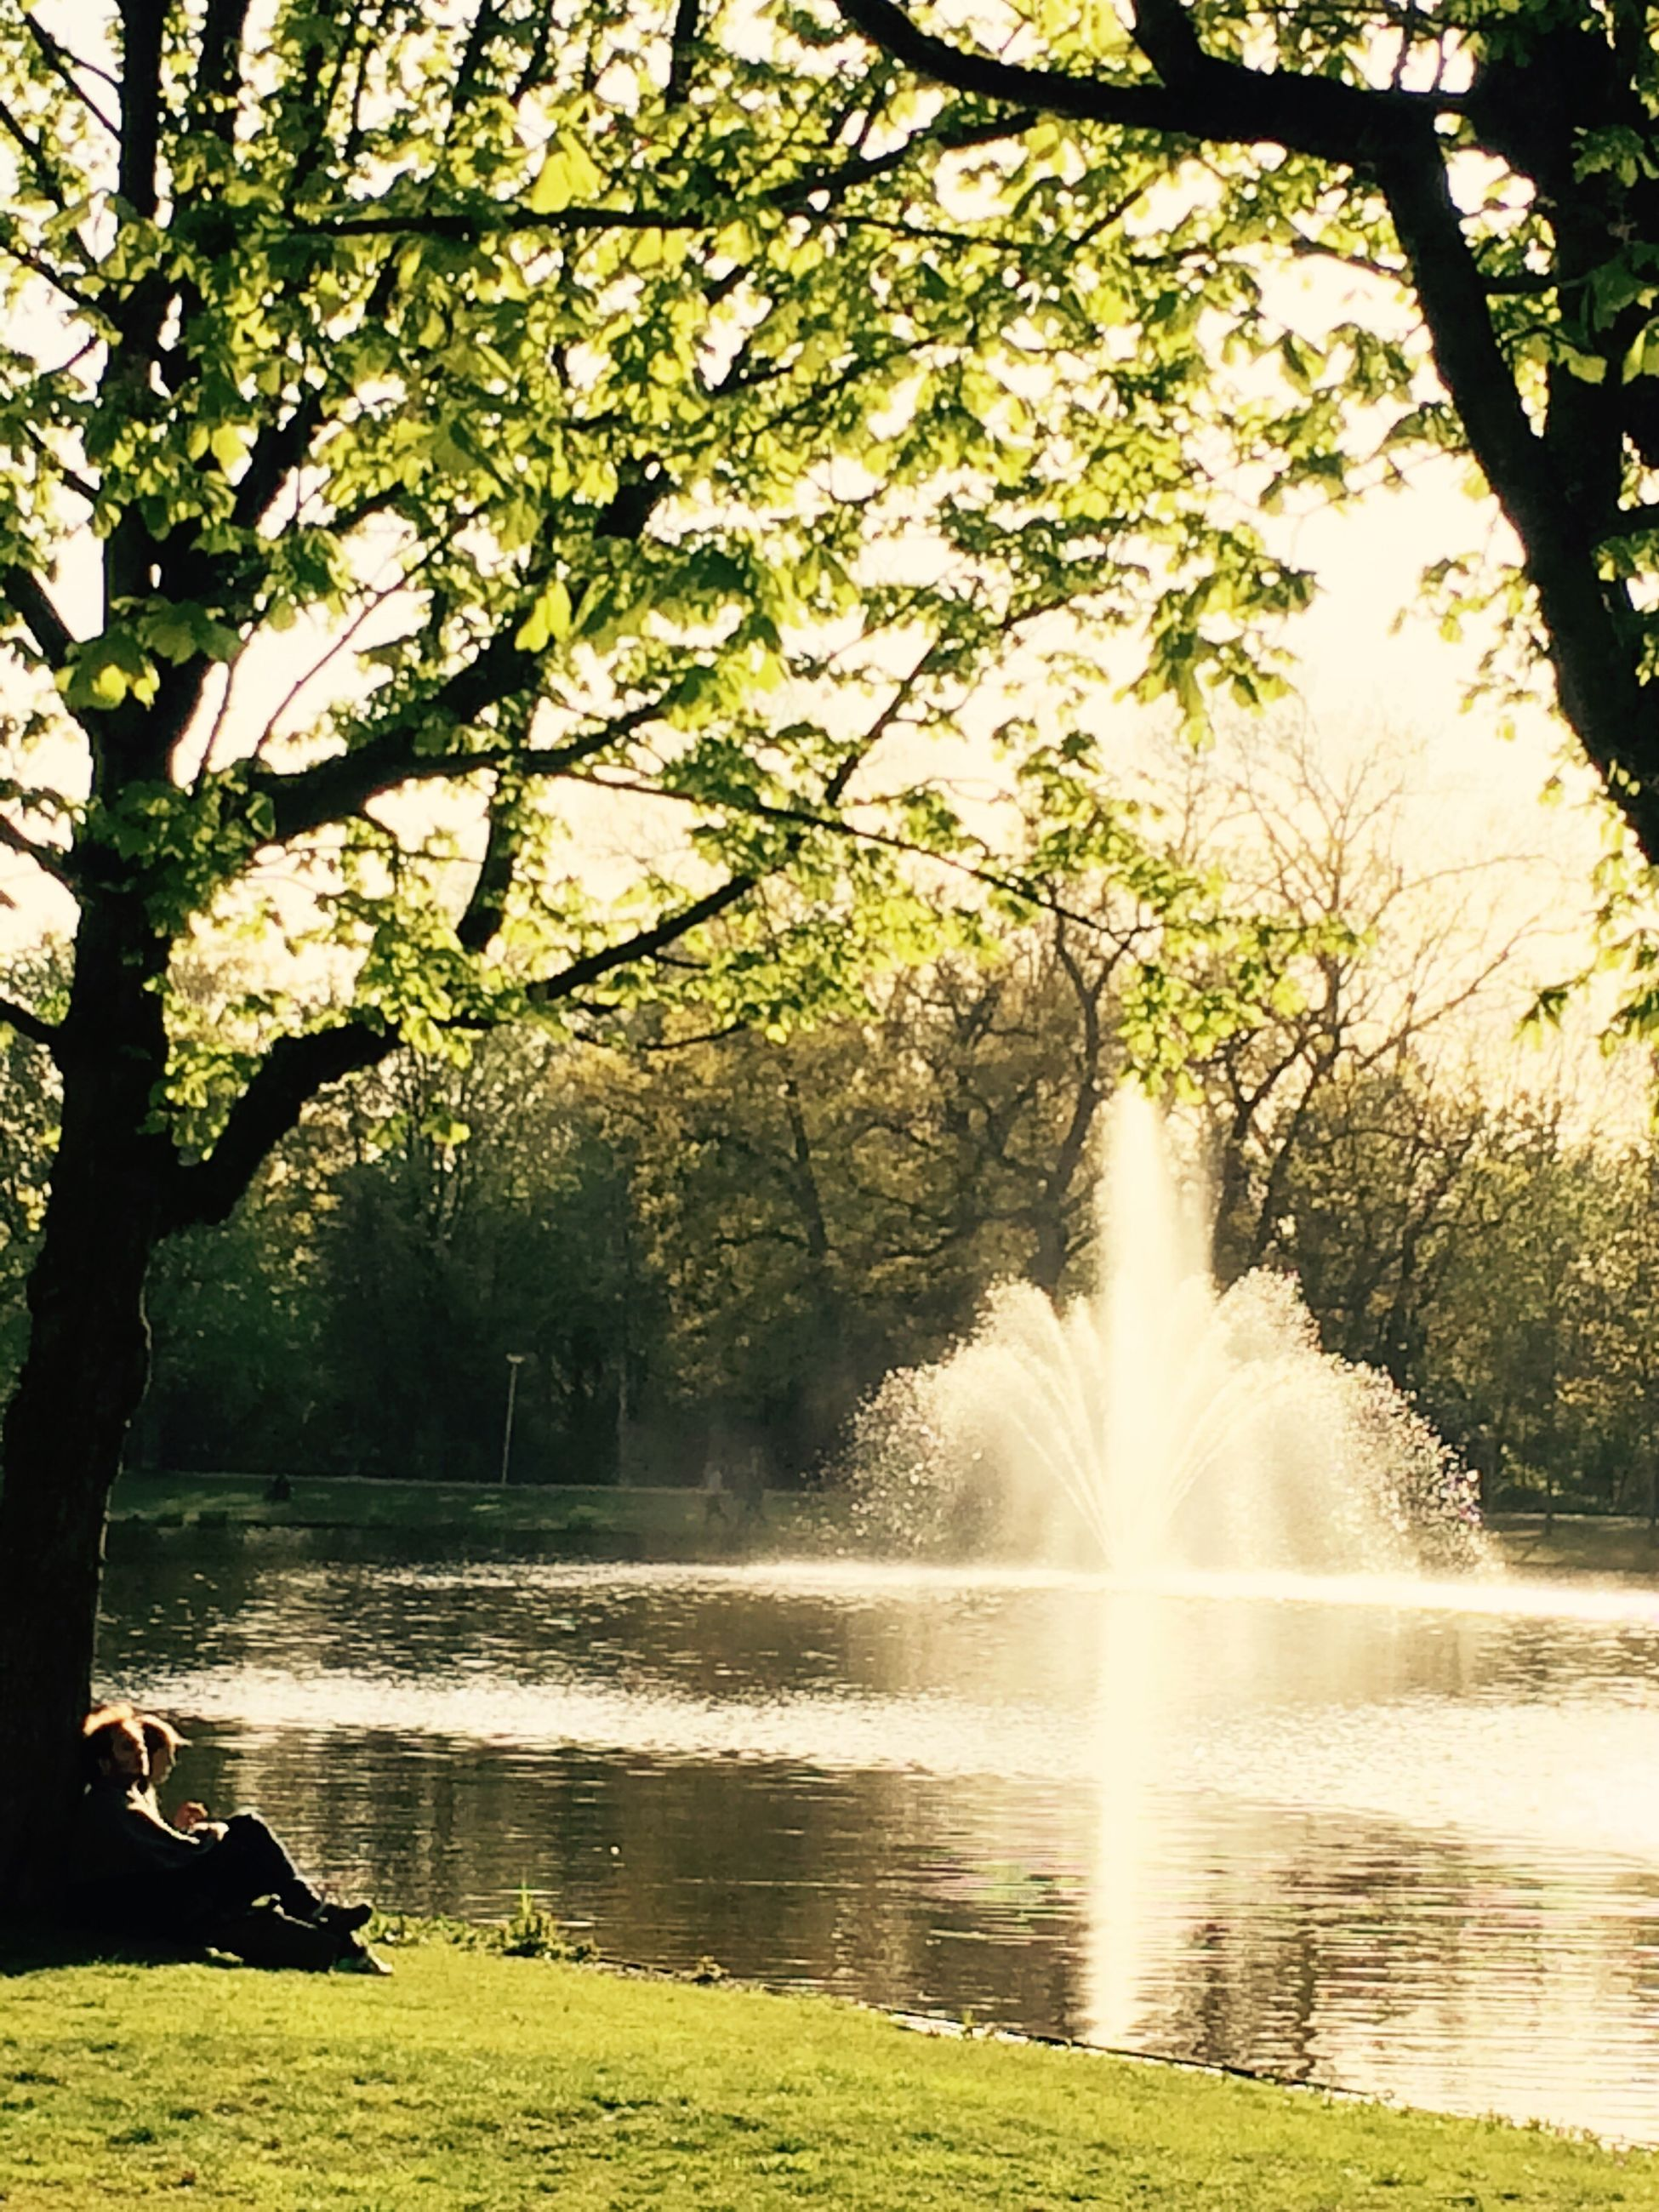 water, tree, motion, nature, lake, outdoors, day, beauty in nature, spraying, branch, scenics, growth, no people, grass